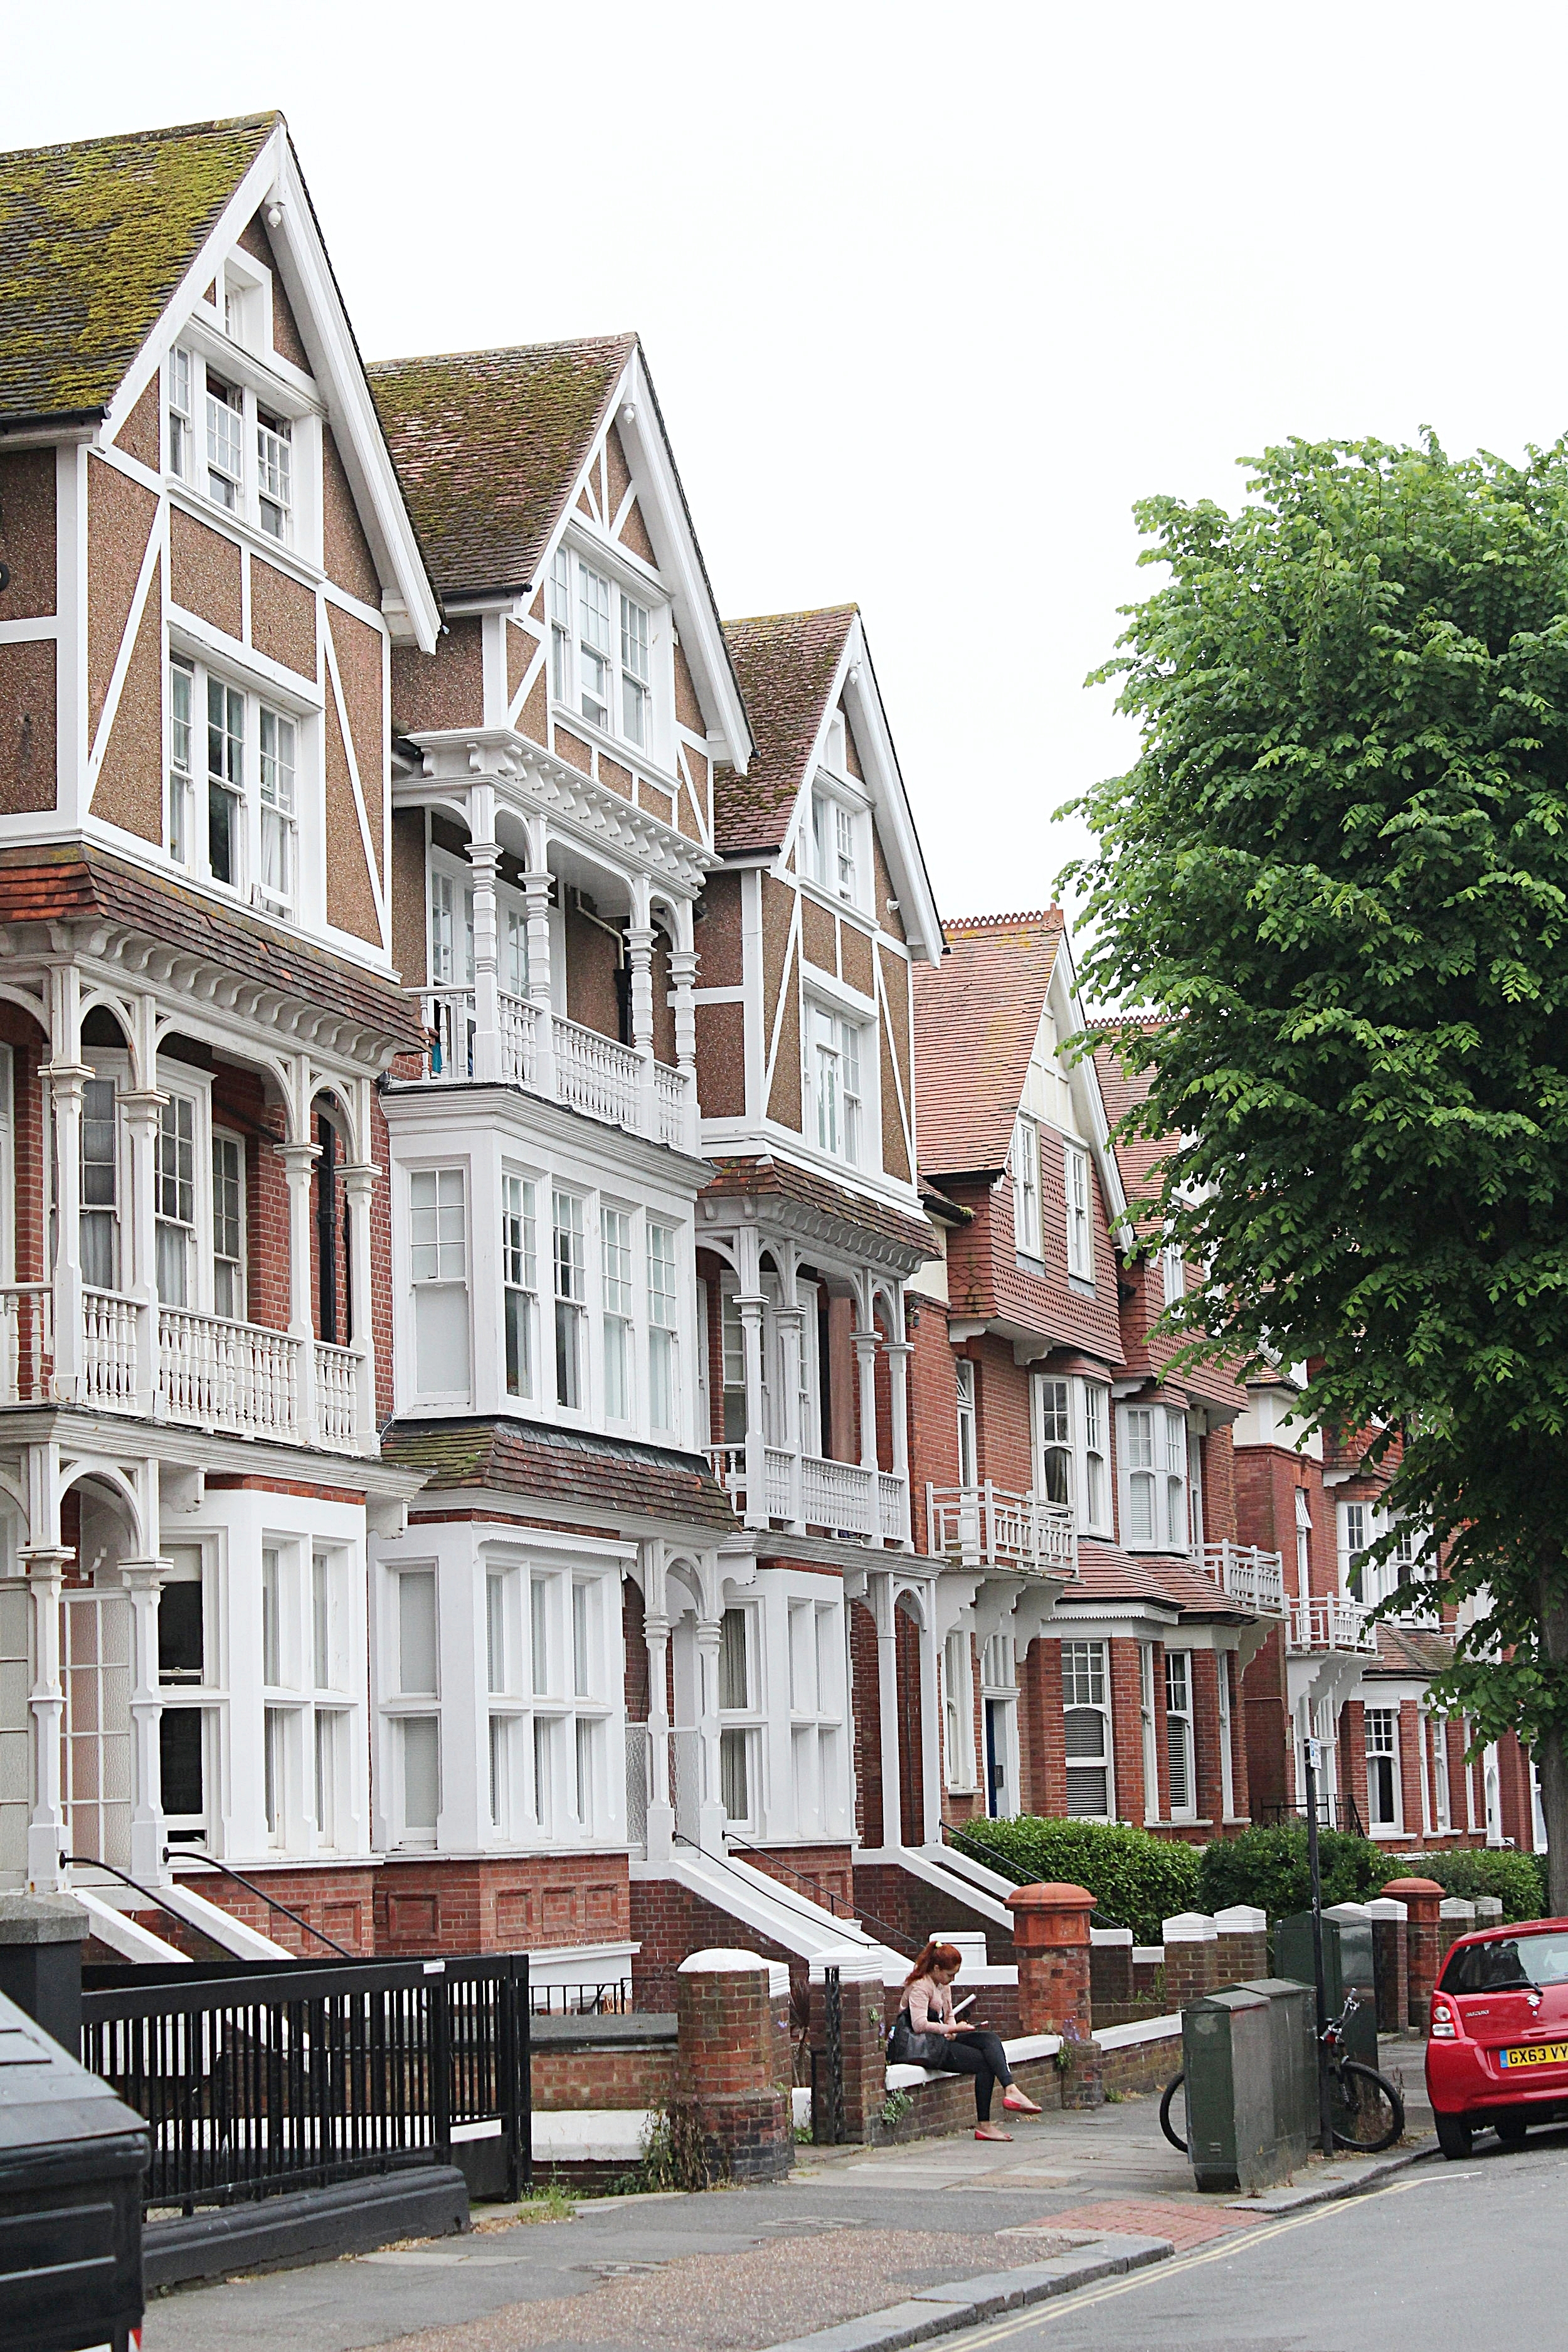 Brighton streets are filled with classic houses.